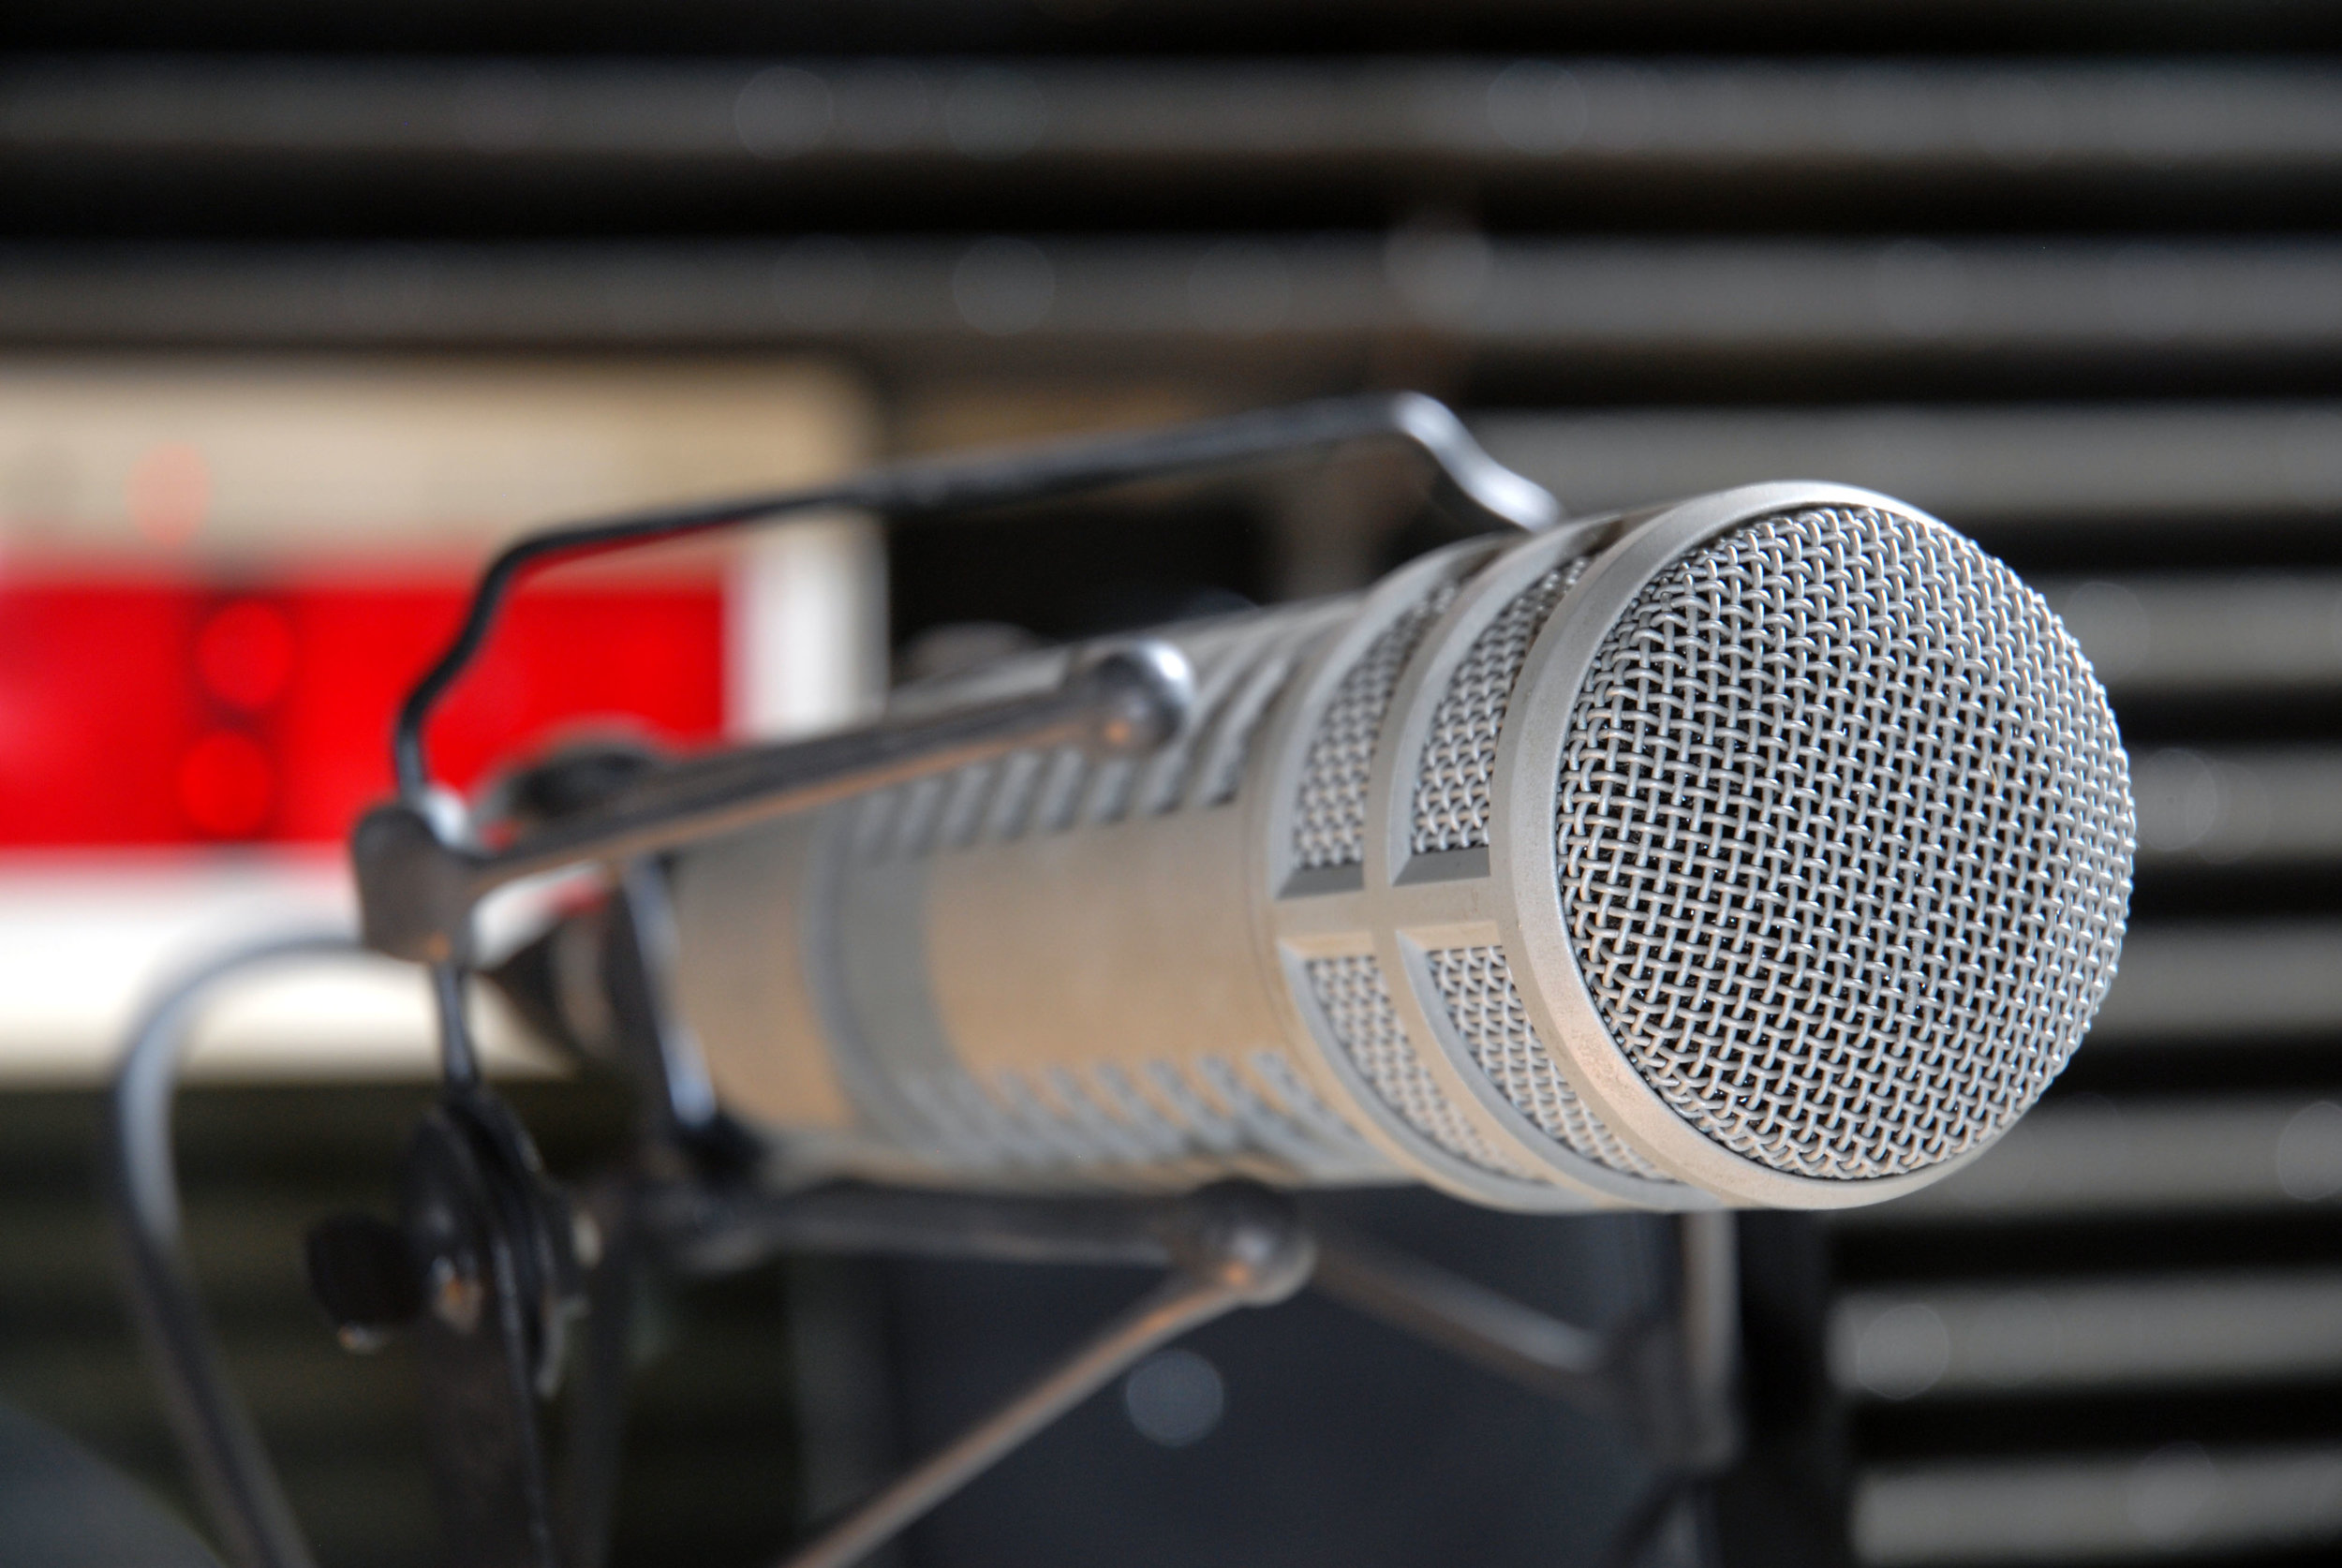 FSN RADIO - Give your station a global edge with customized news feeds and our anchored, commercial-free news bulletins.Click here to learn more about how to subscribe to FSN RADIO now.